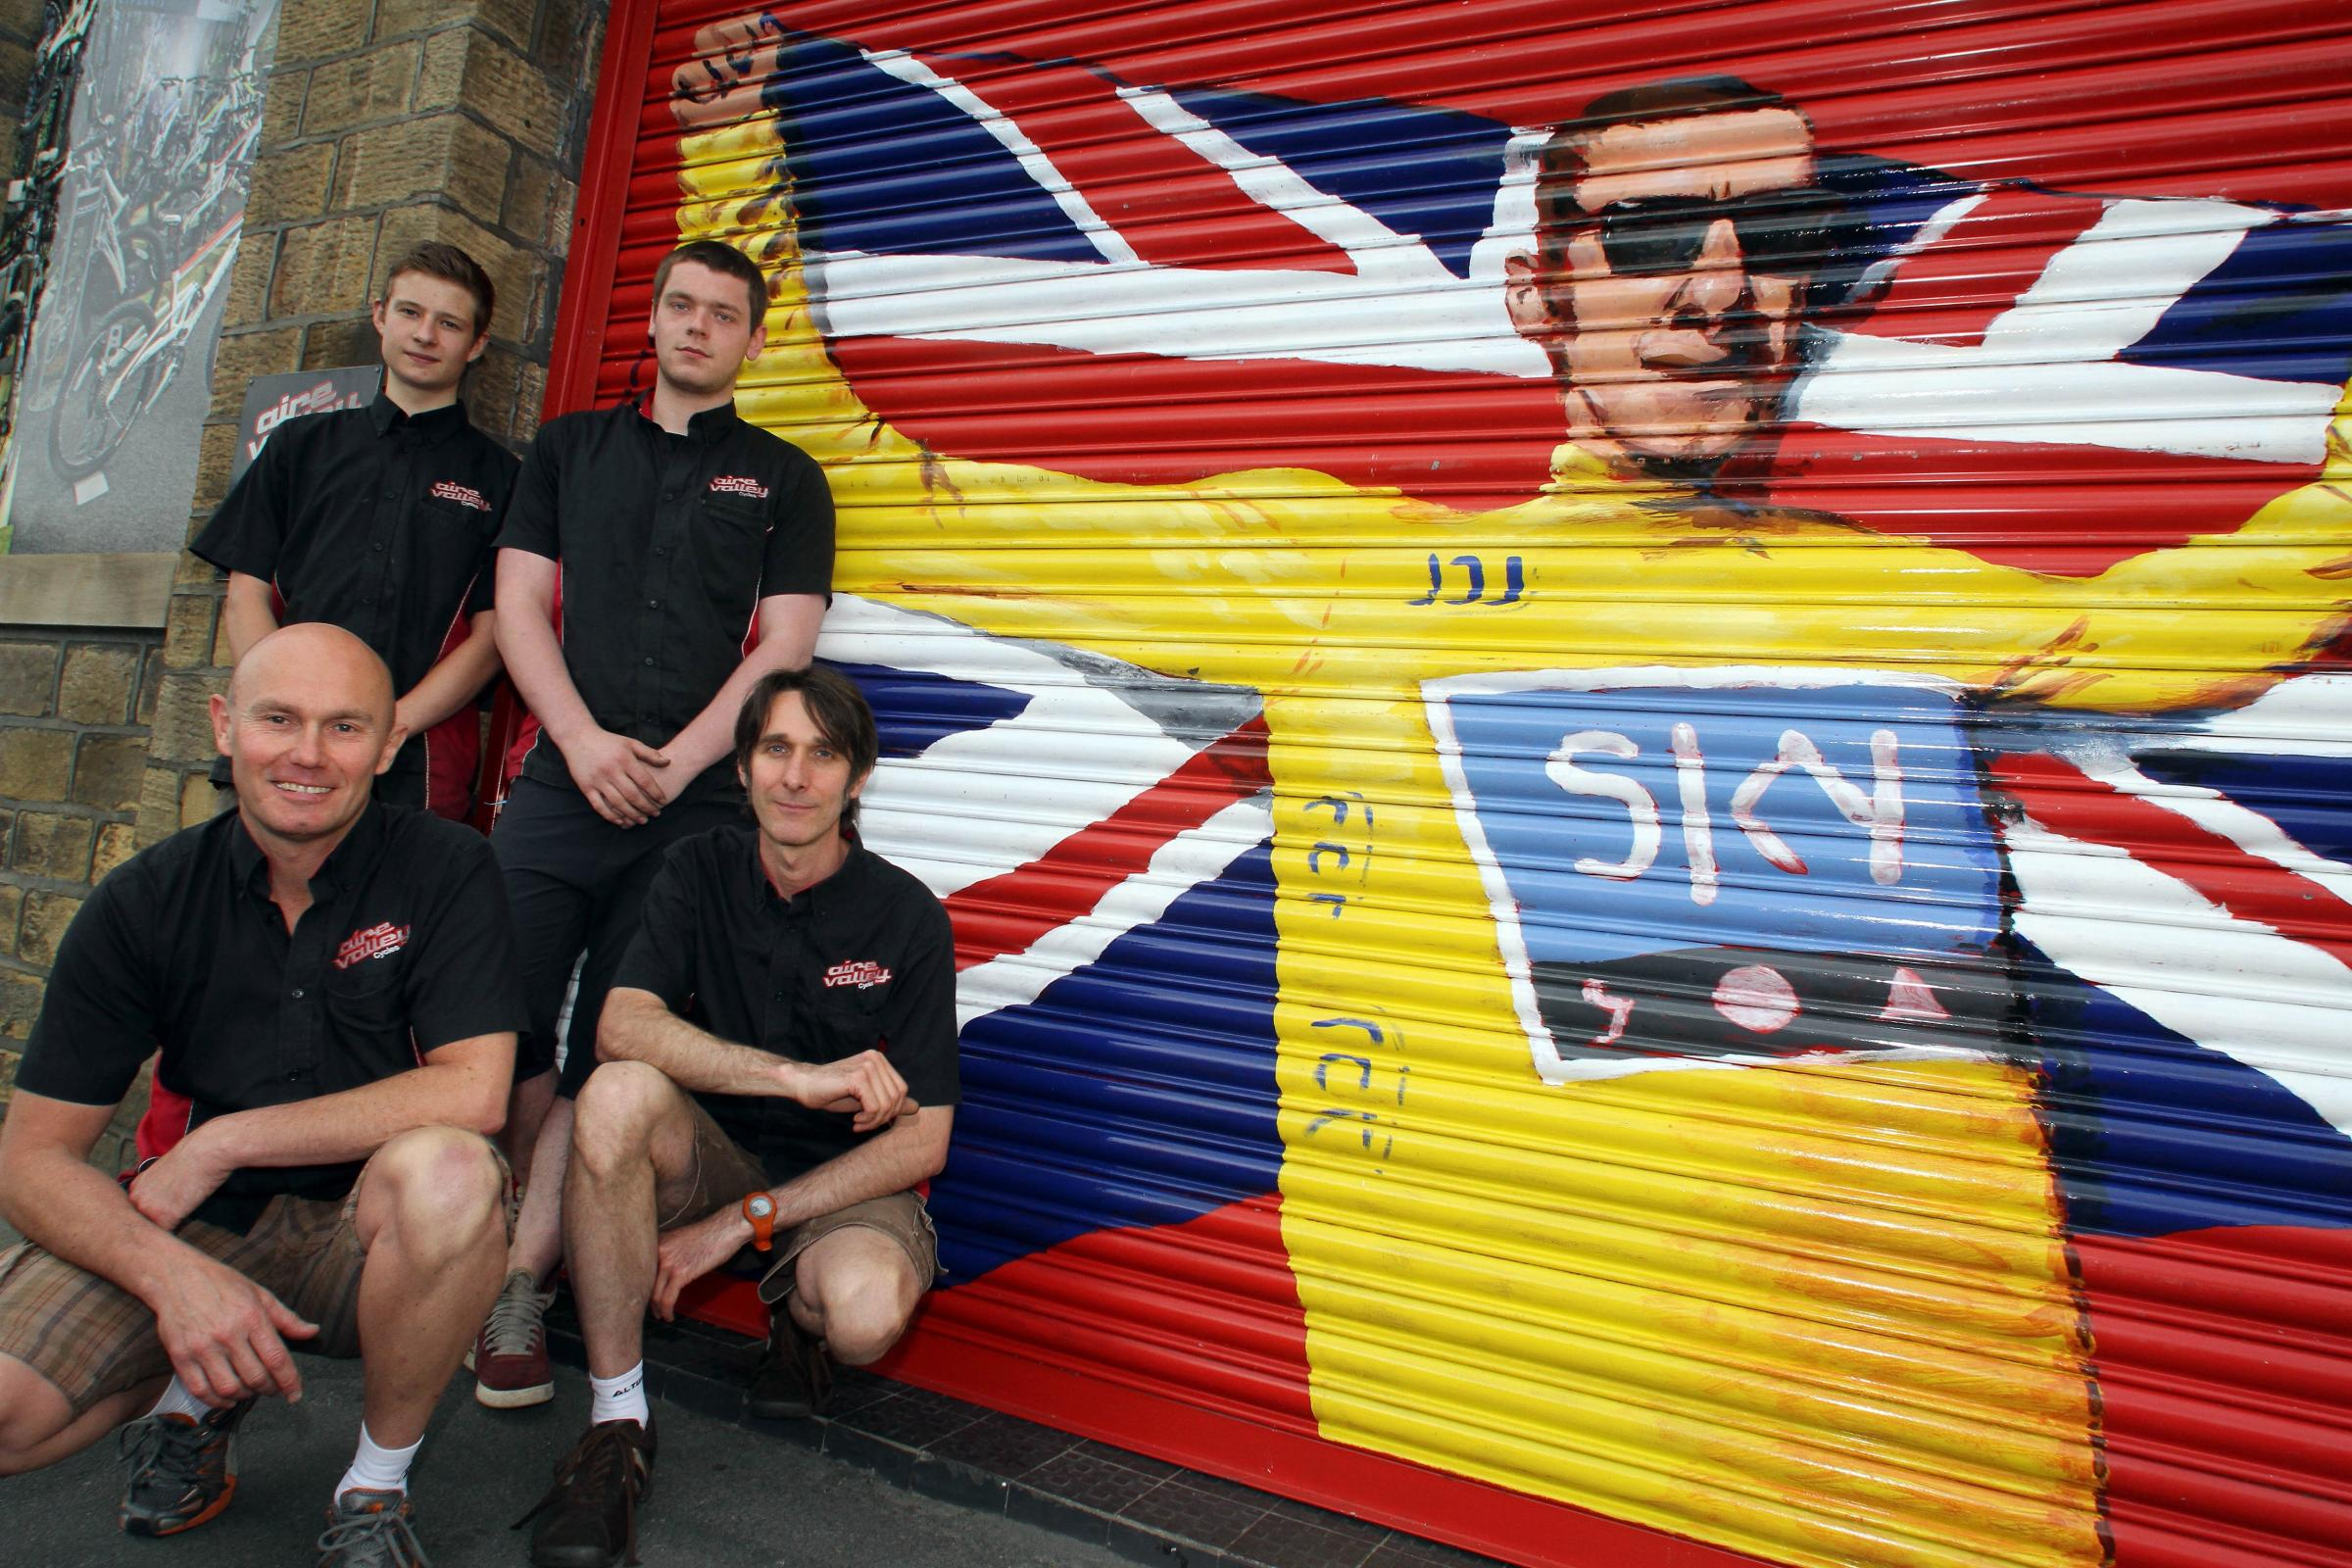 Champion cyclist Bradley Wiggins adds patriotic cheer to facade of Keighley bike shop